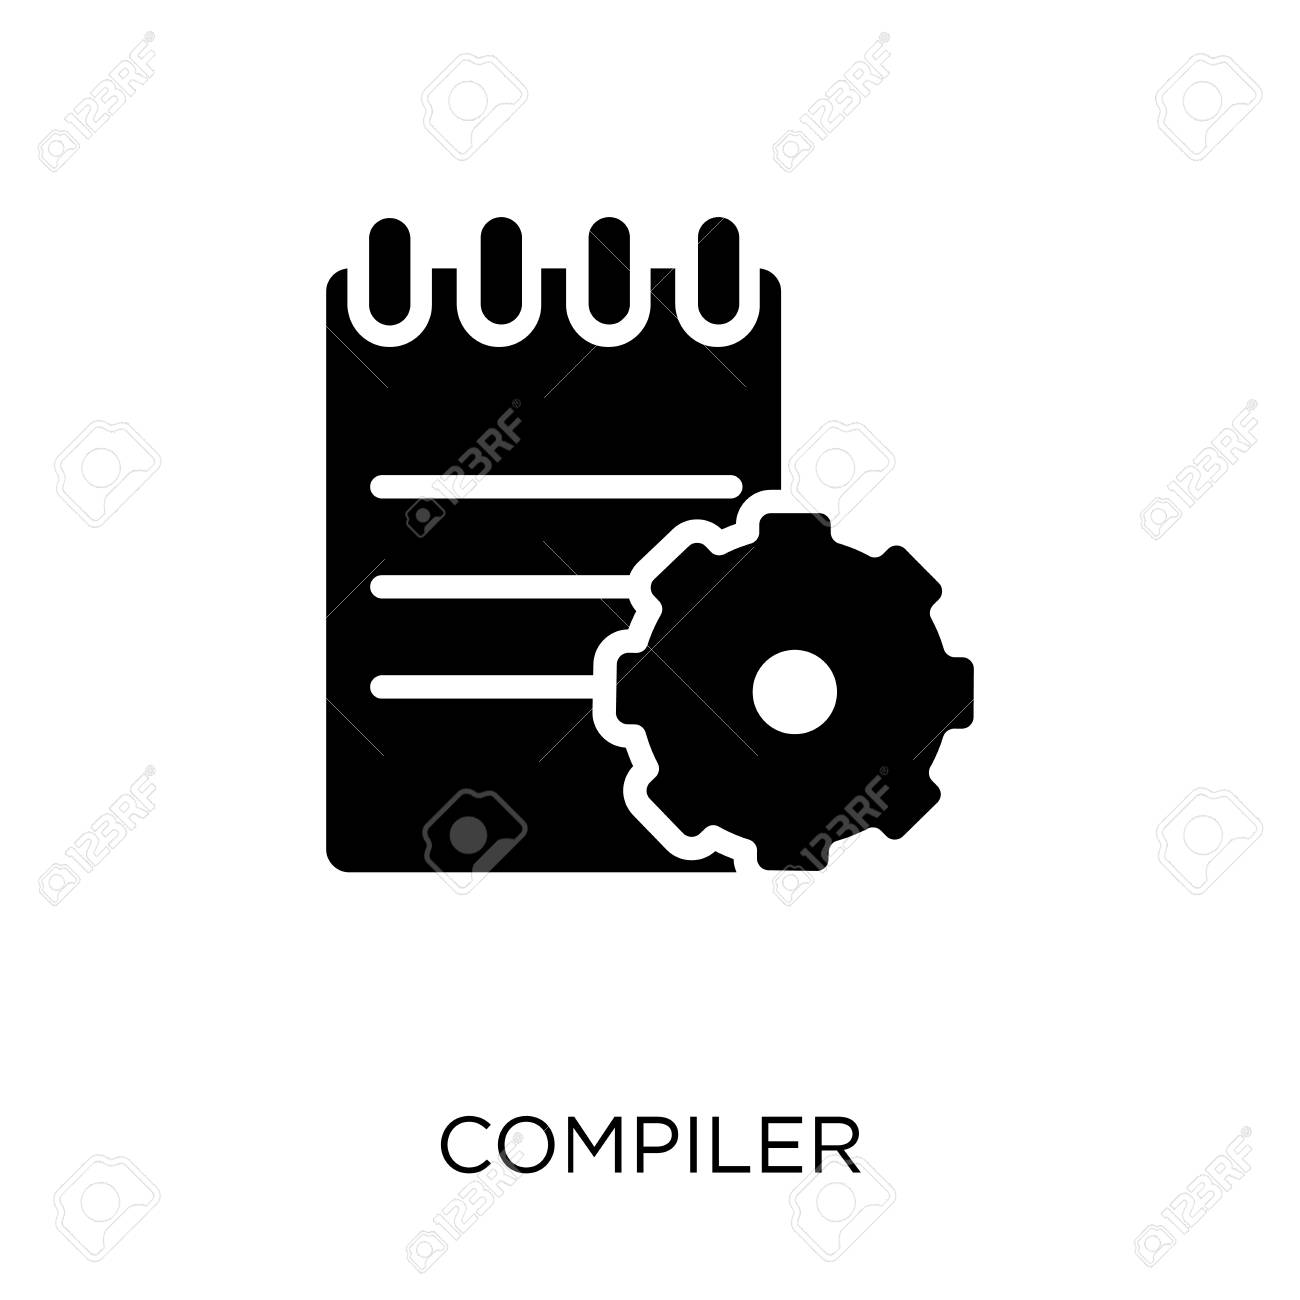 Compiler icon  Compiler symbol design from Programming collection